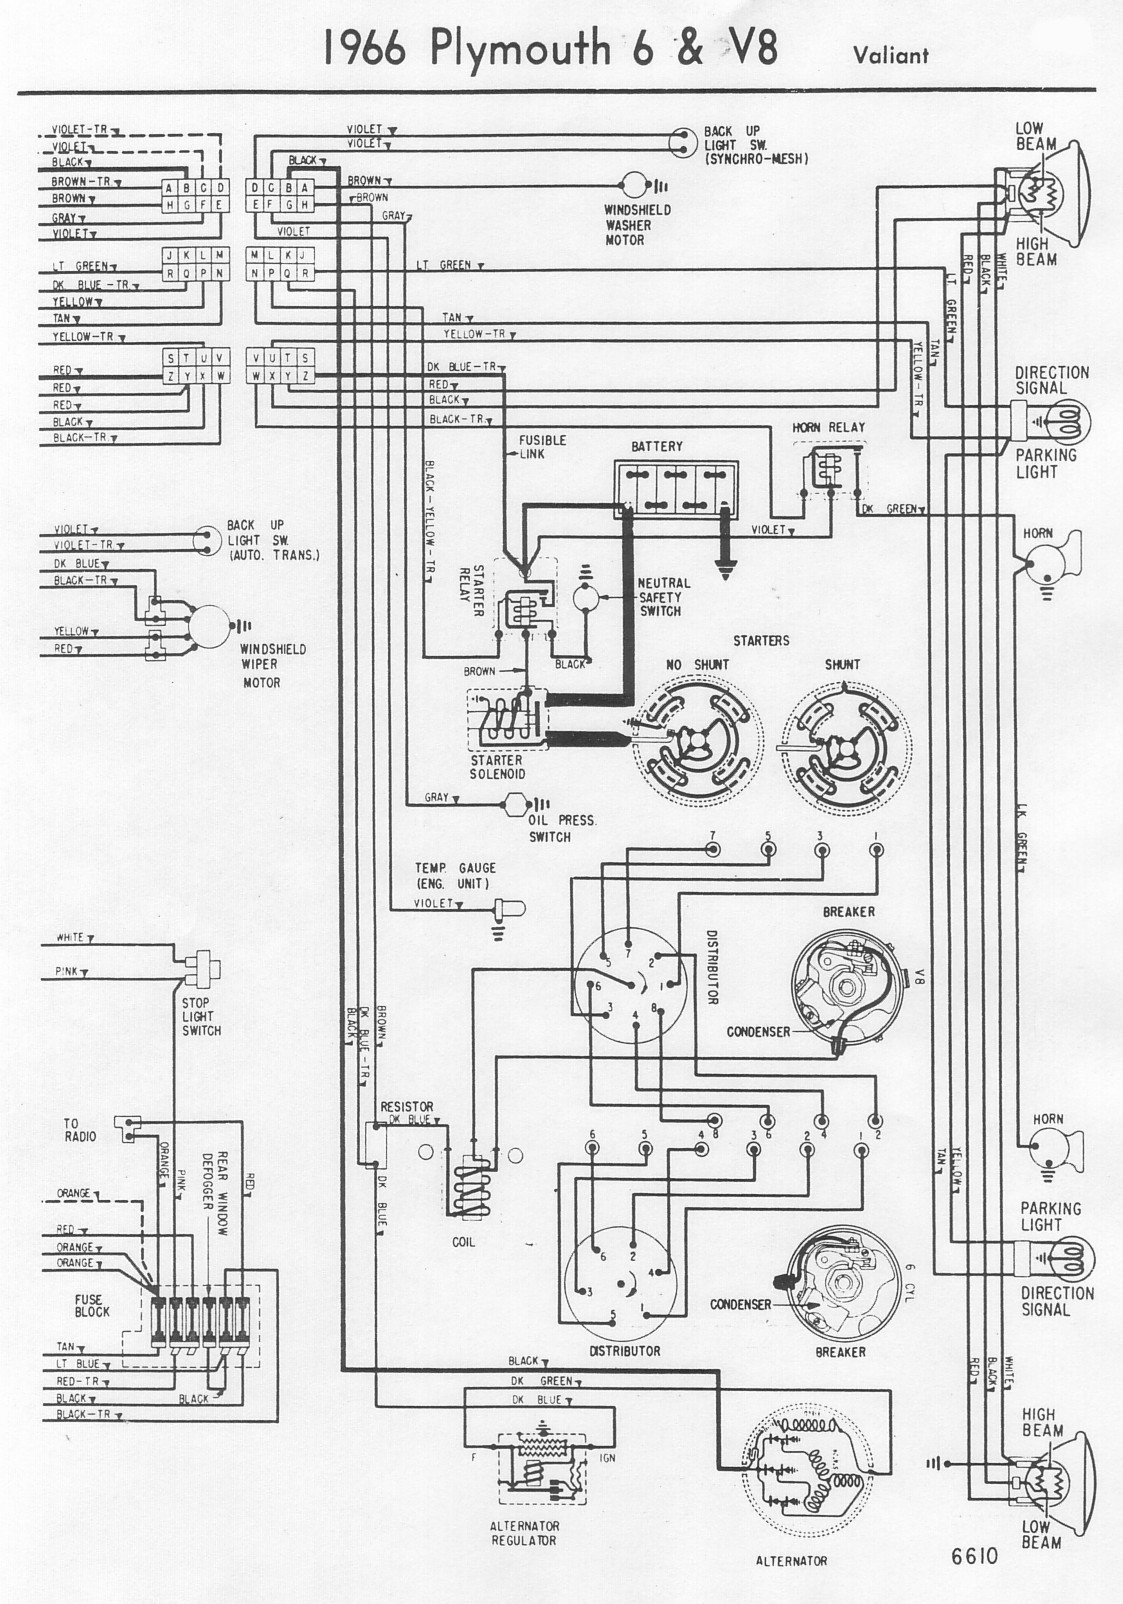 66ValiantB 67 plymouth barracuda wiring diagram wiring library